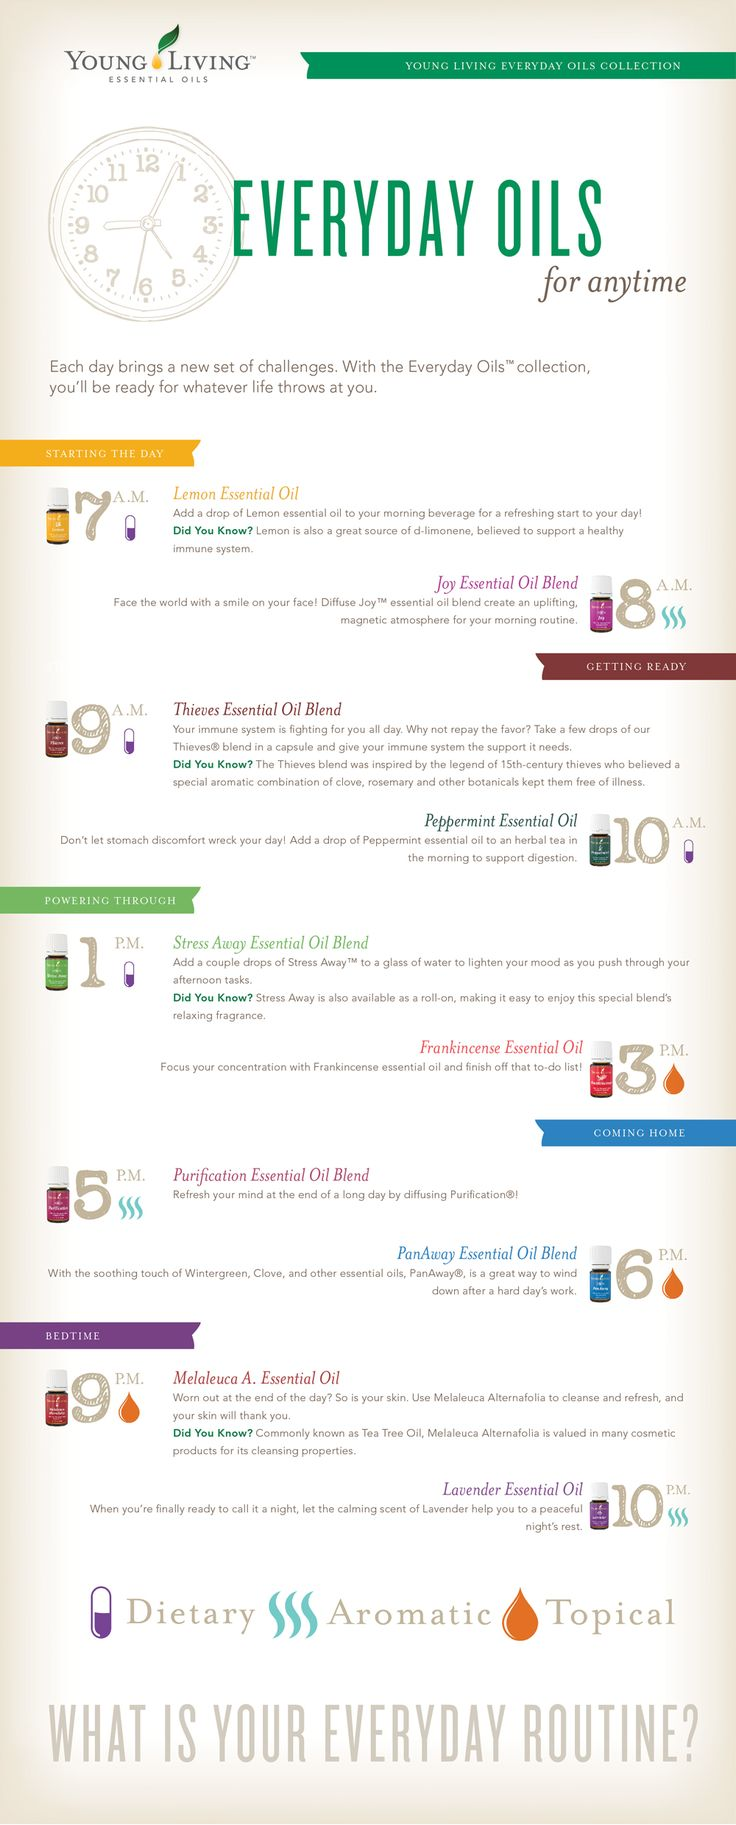 Young Living Essential Oils - to use Everyday!